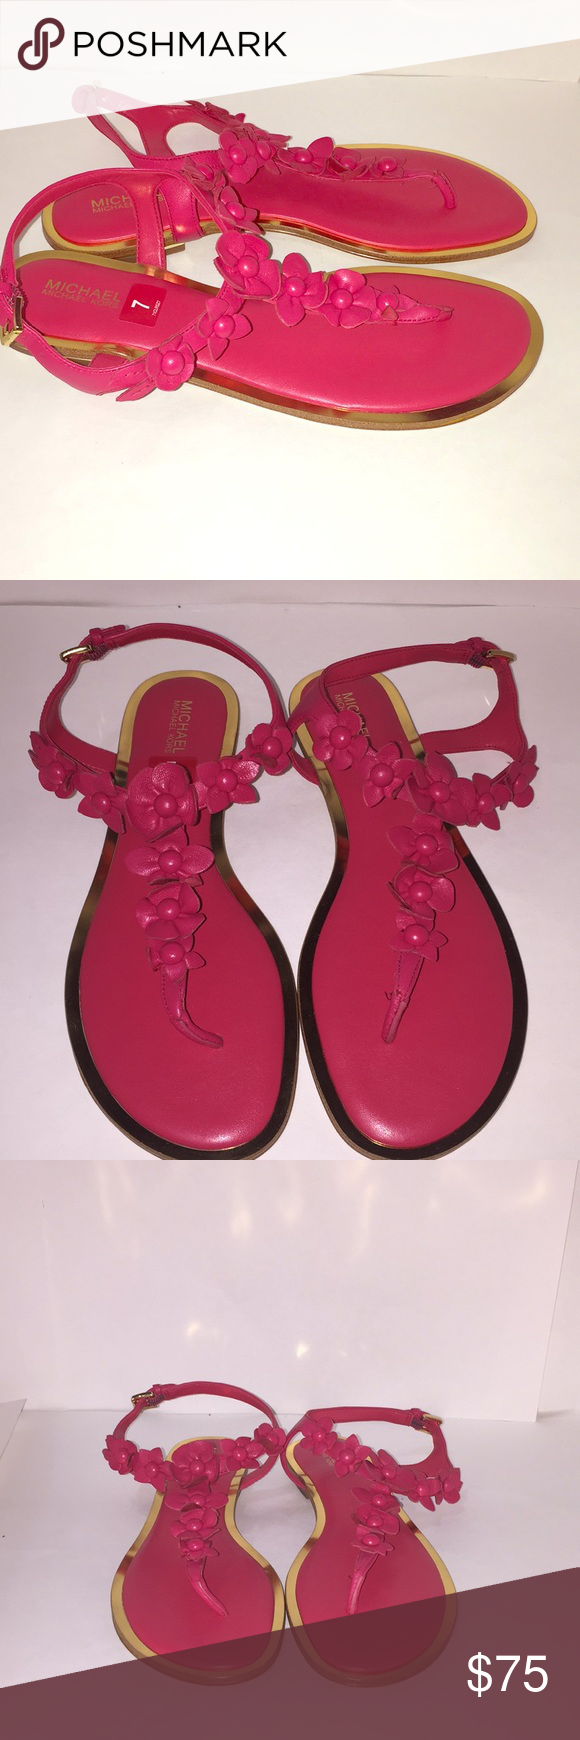 d85b6027a Michael Kors Tricia Flower Thong Sandals Deep Pink MICHAEL Michael Kors  sheep leather sandal with floral